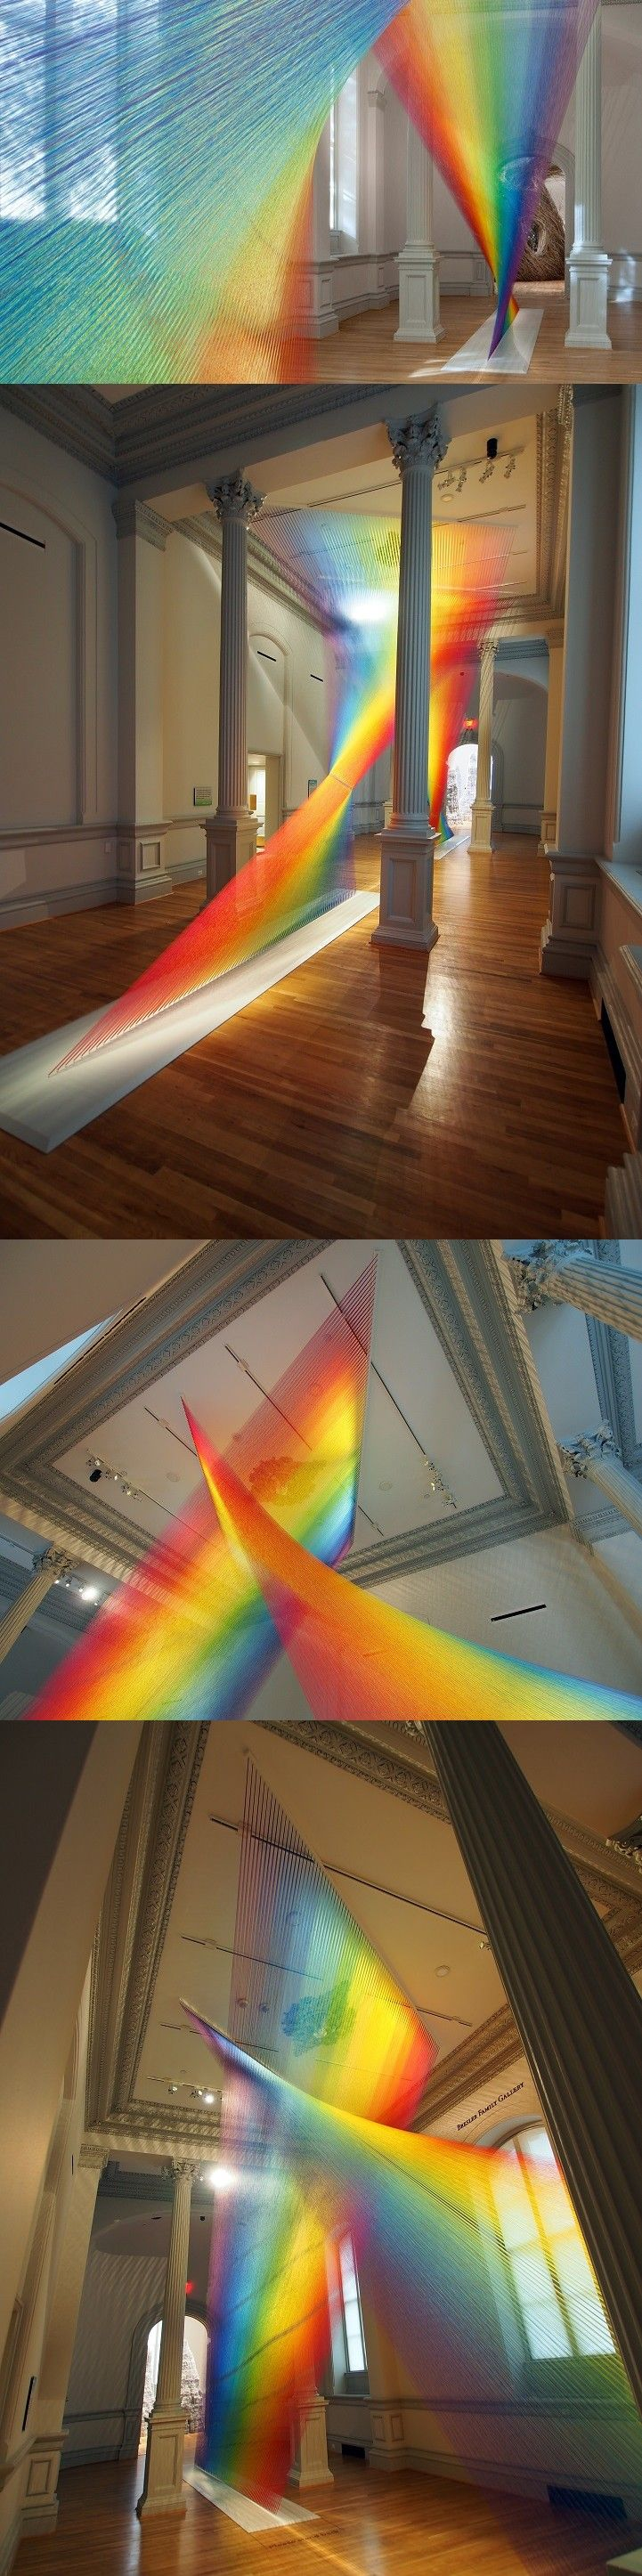 Vibrant Rainbow Installation Made with 60 Miles of Thread Weaves through the Smithsonian by Gabriel Dawe